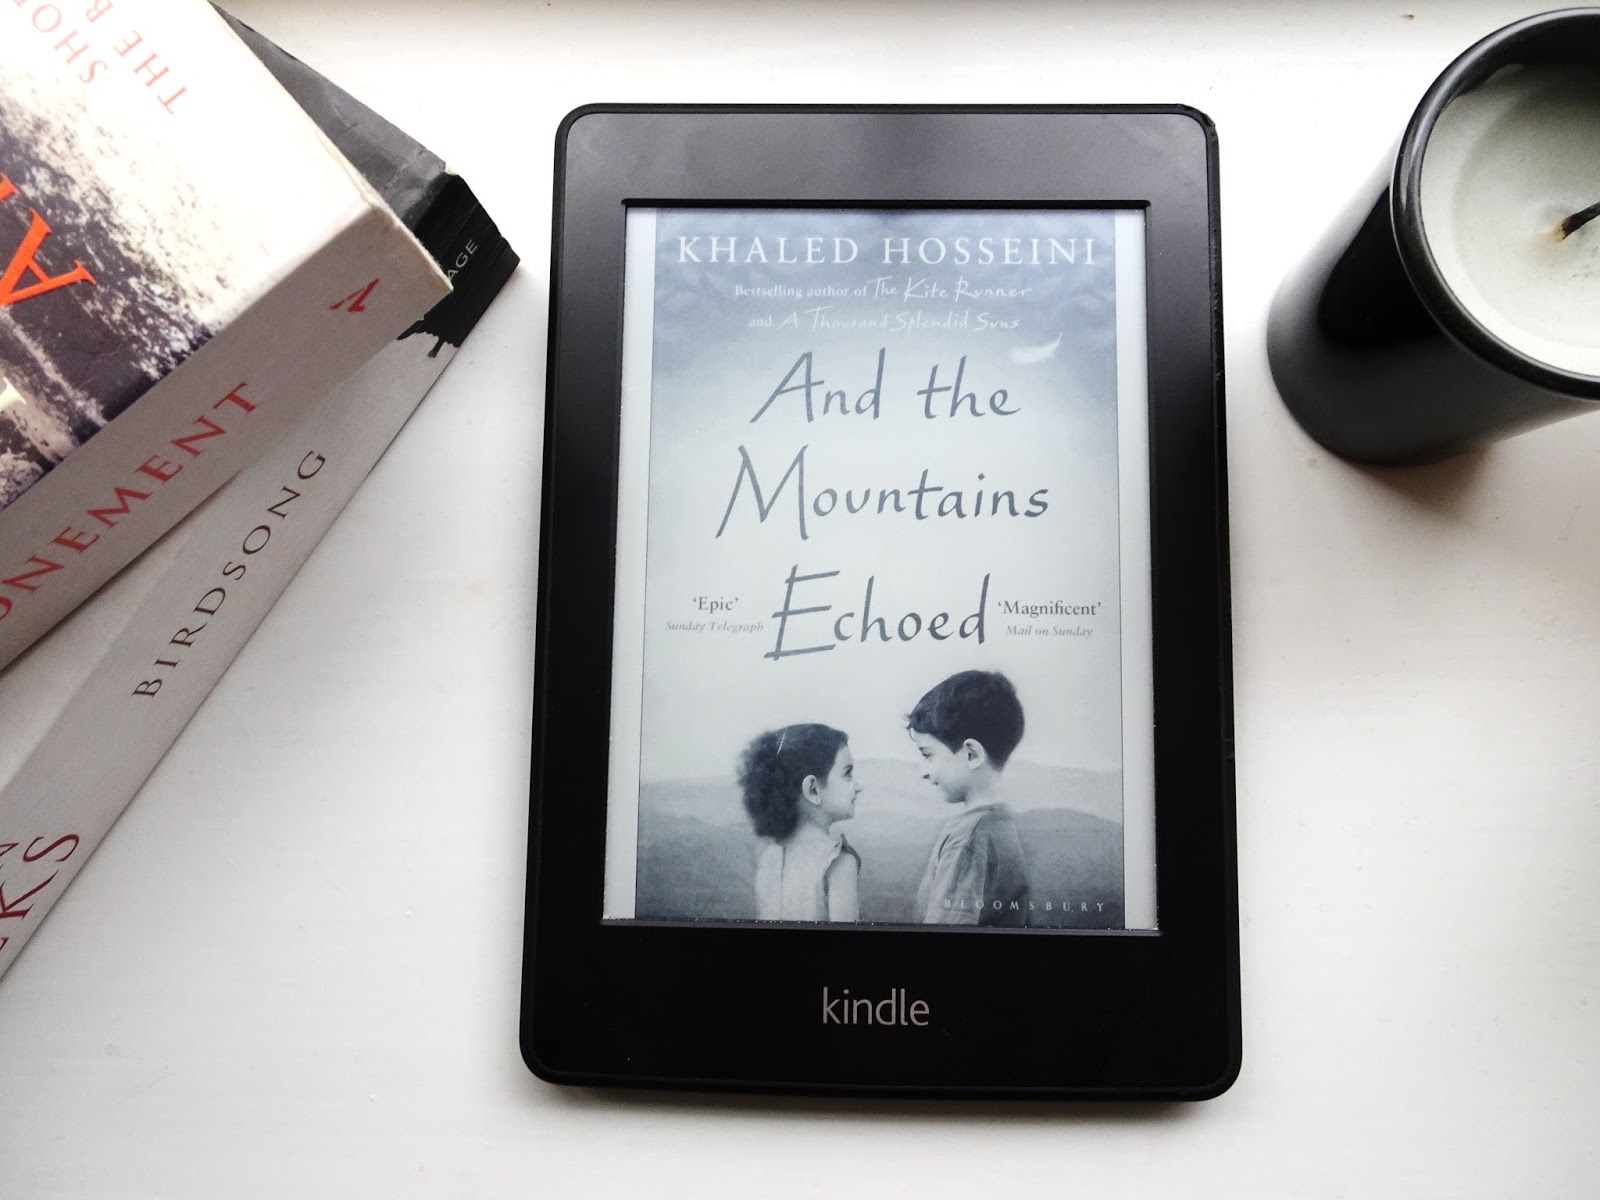 review and the mountains echoed khaled hosseini a view from i first came across khaled hosseini when i was in sixth form and he quickly became one of my favourite writers the kite runner and a thousand splendid suns